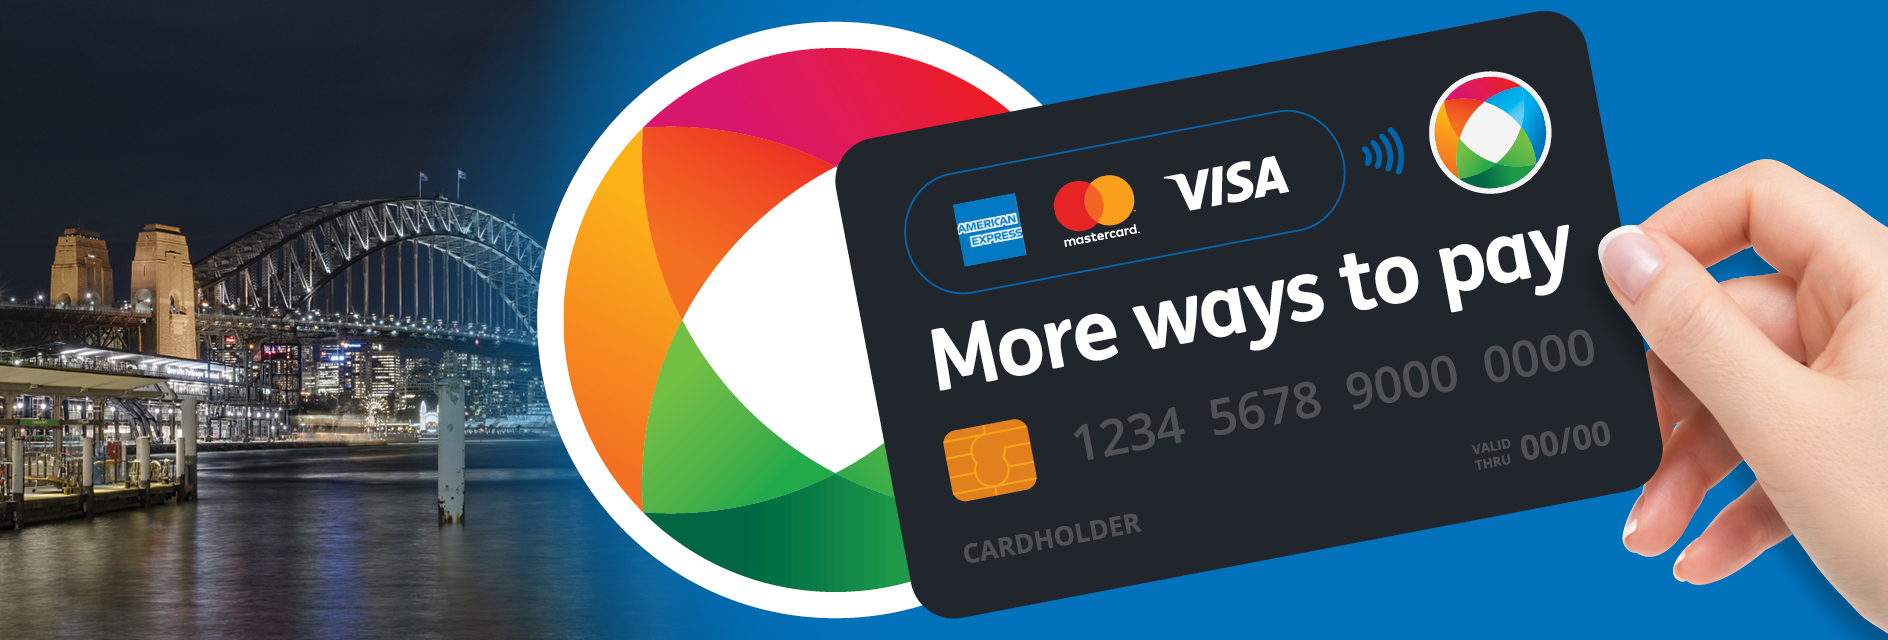 Contactless payments | transportnsw info